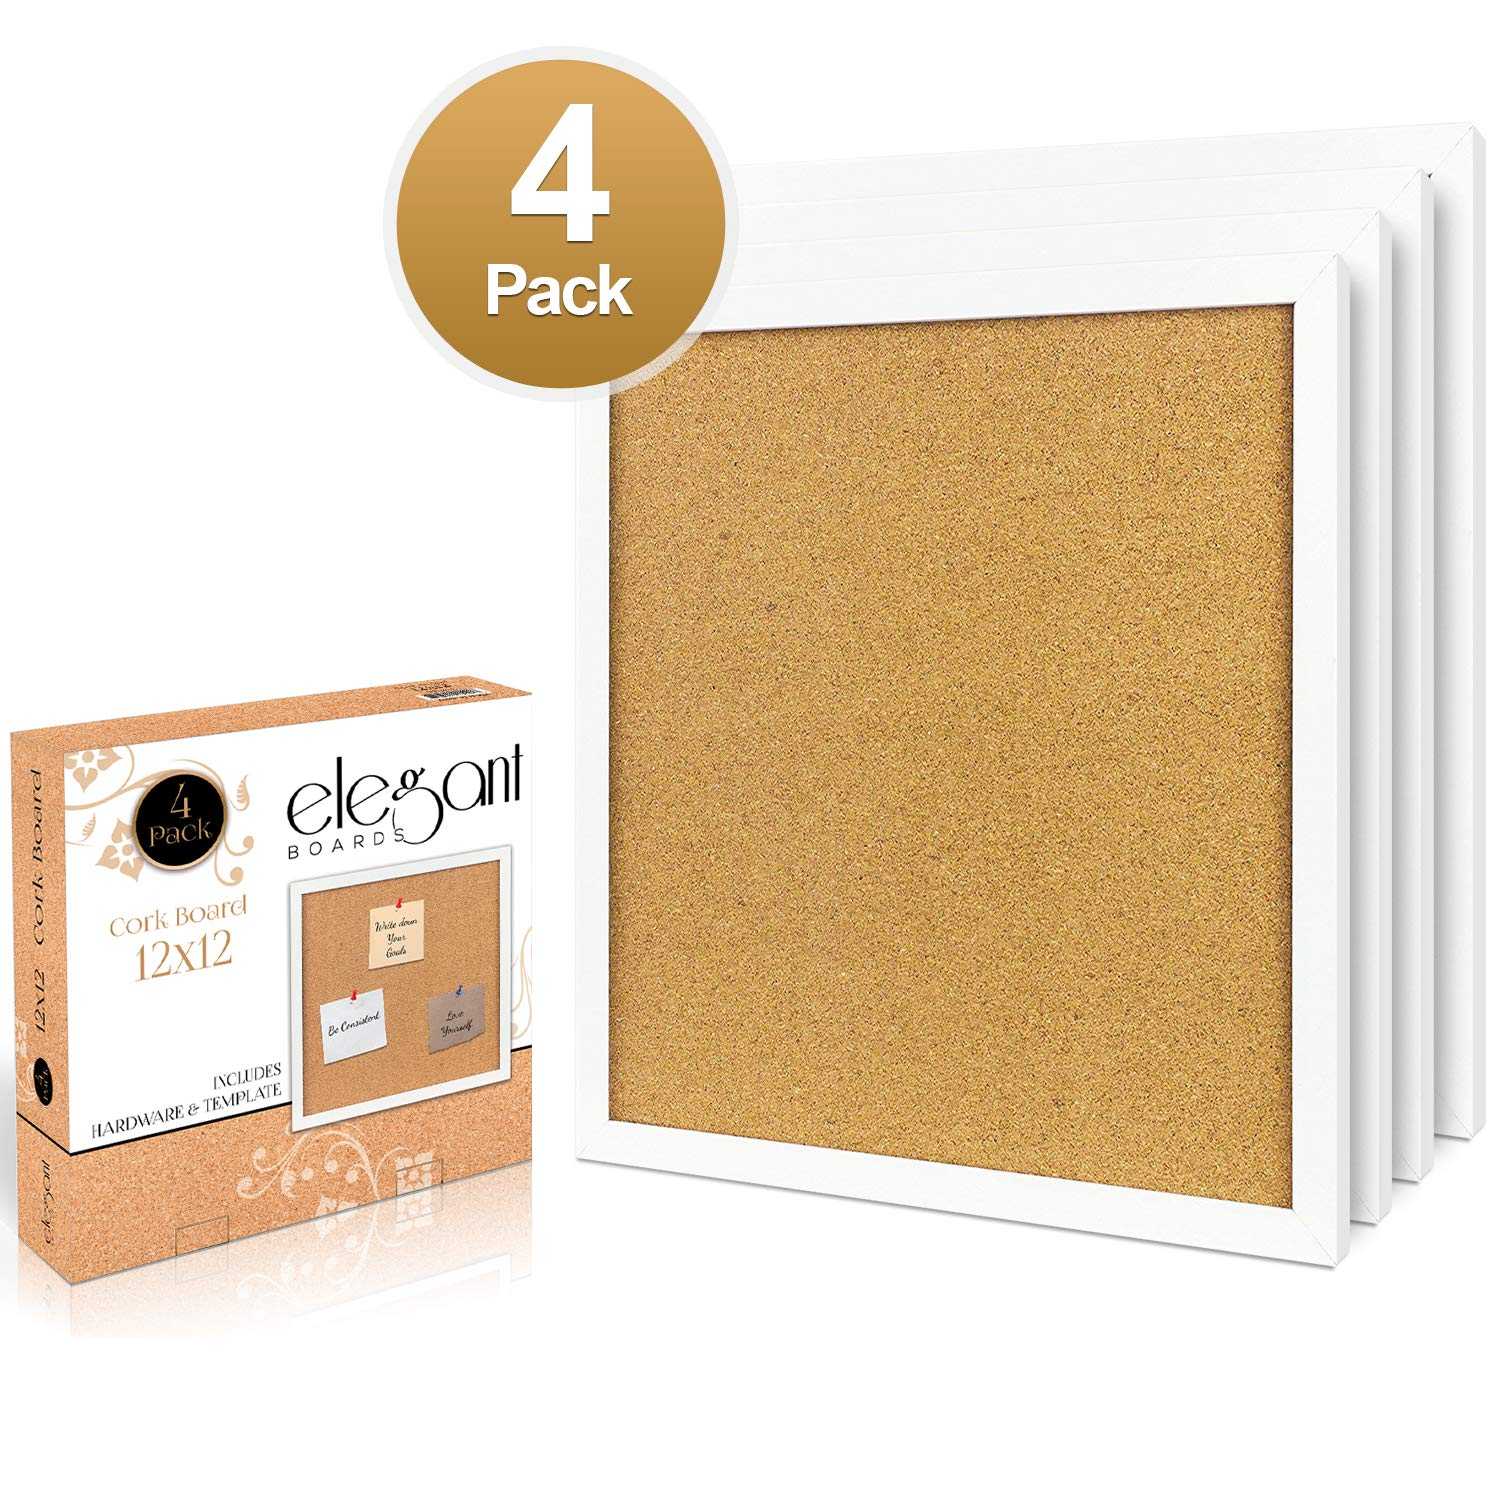 4 Pack Cork Bulletin Board 12''X 12'' Square Wall Tiles, Modern White Framed Boards for Home and Office (Hardware and Template Included) by Elegant Boards